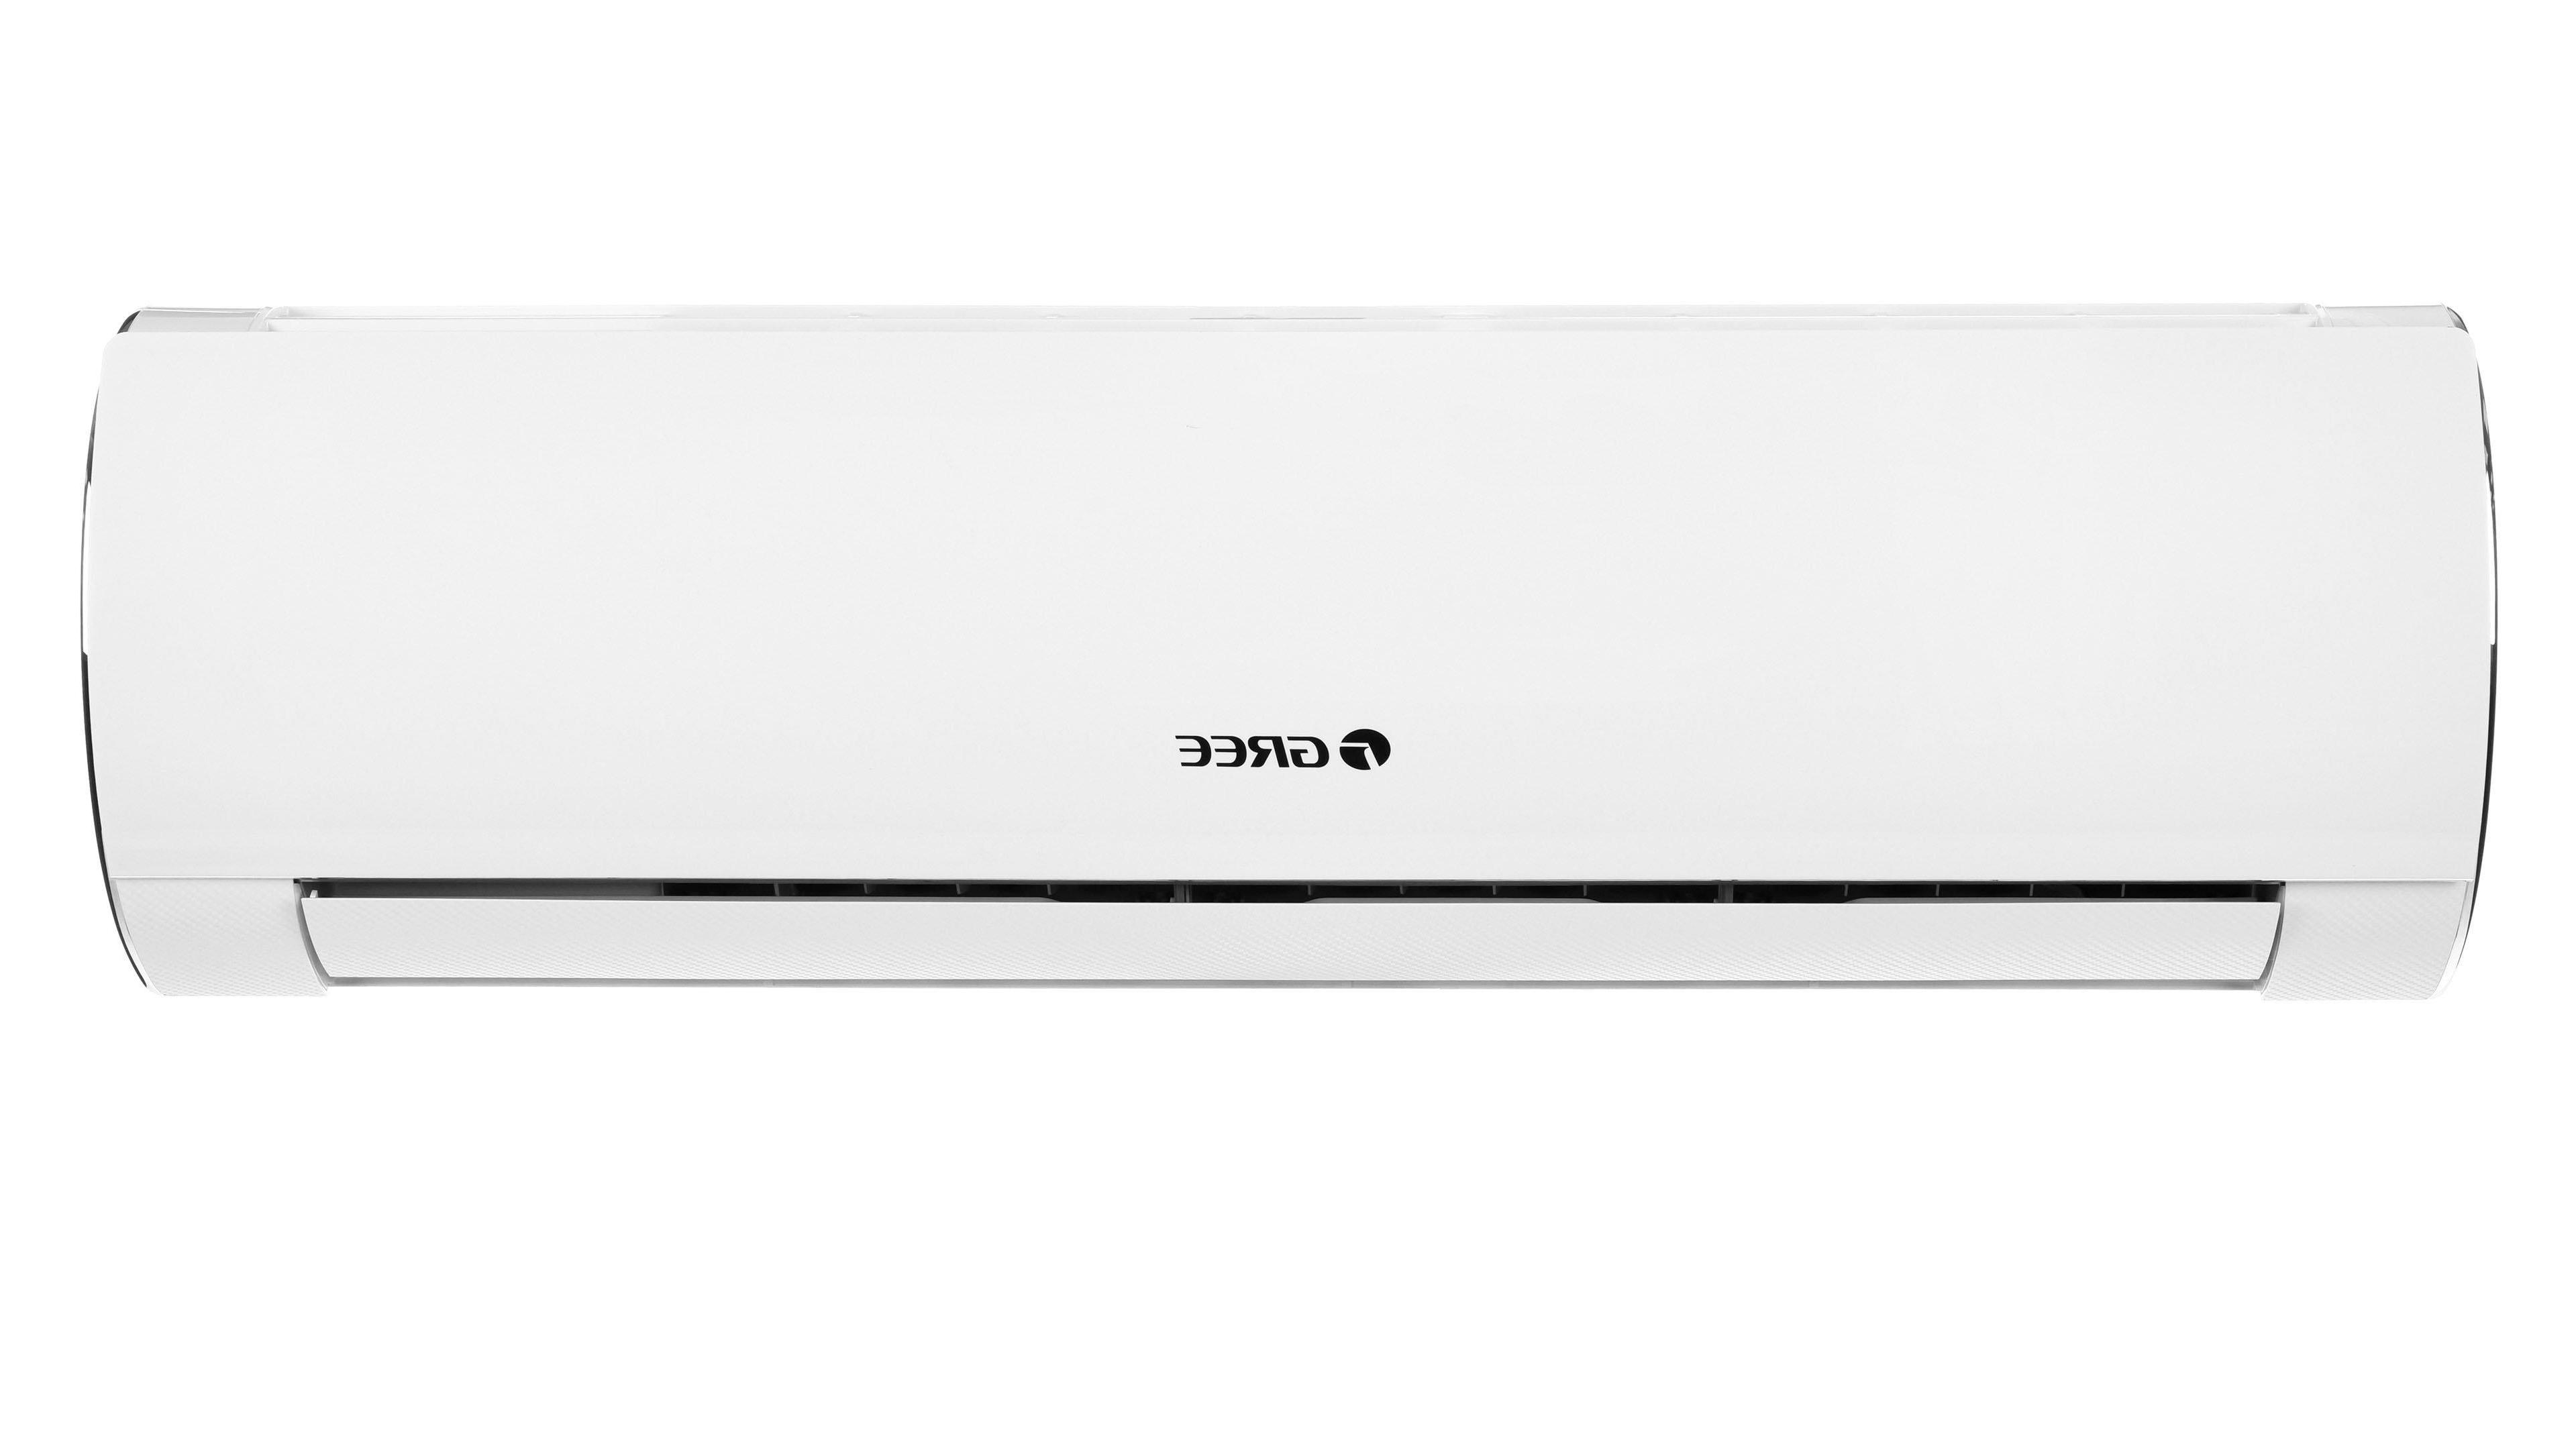 Gree Split AC 11,600 BTU, Hot and Cold, WiFi Function